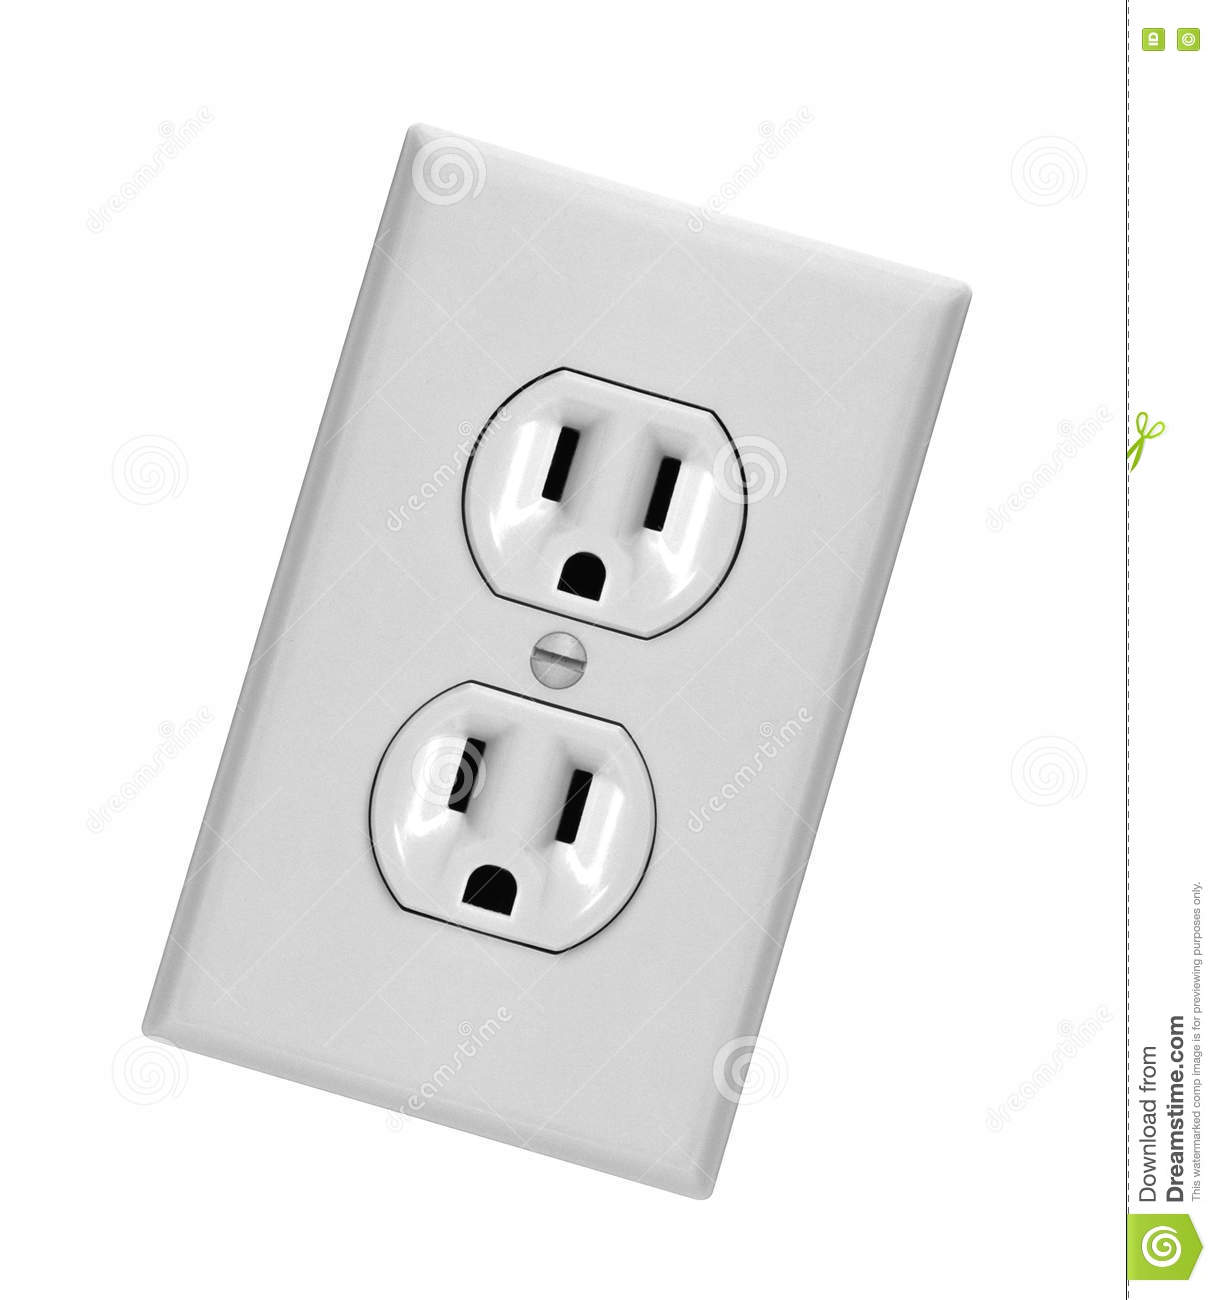 White Electric Wall Outlet Receptacle Stock Photo - Image of power ...